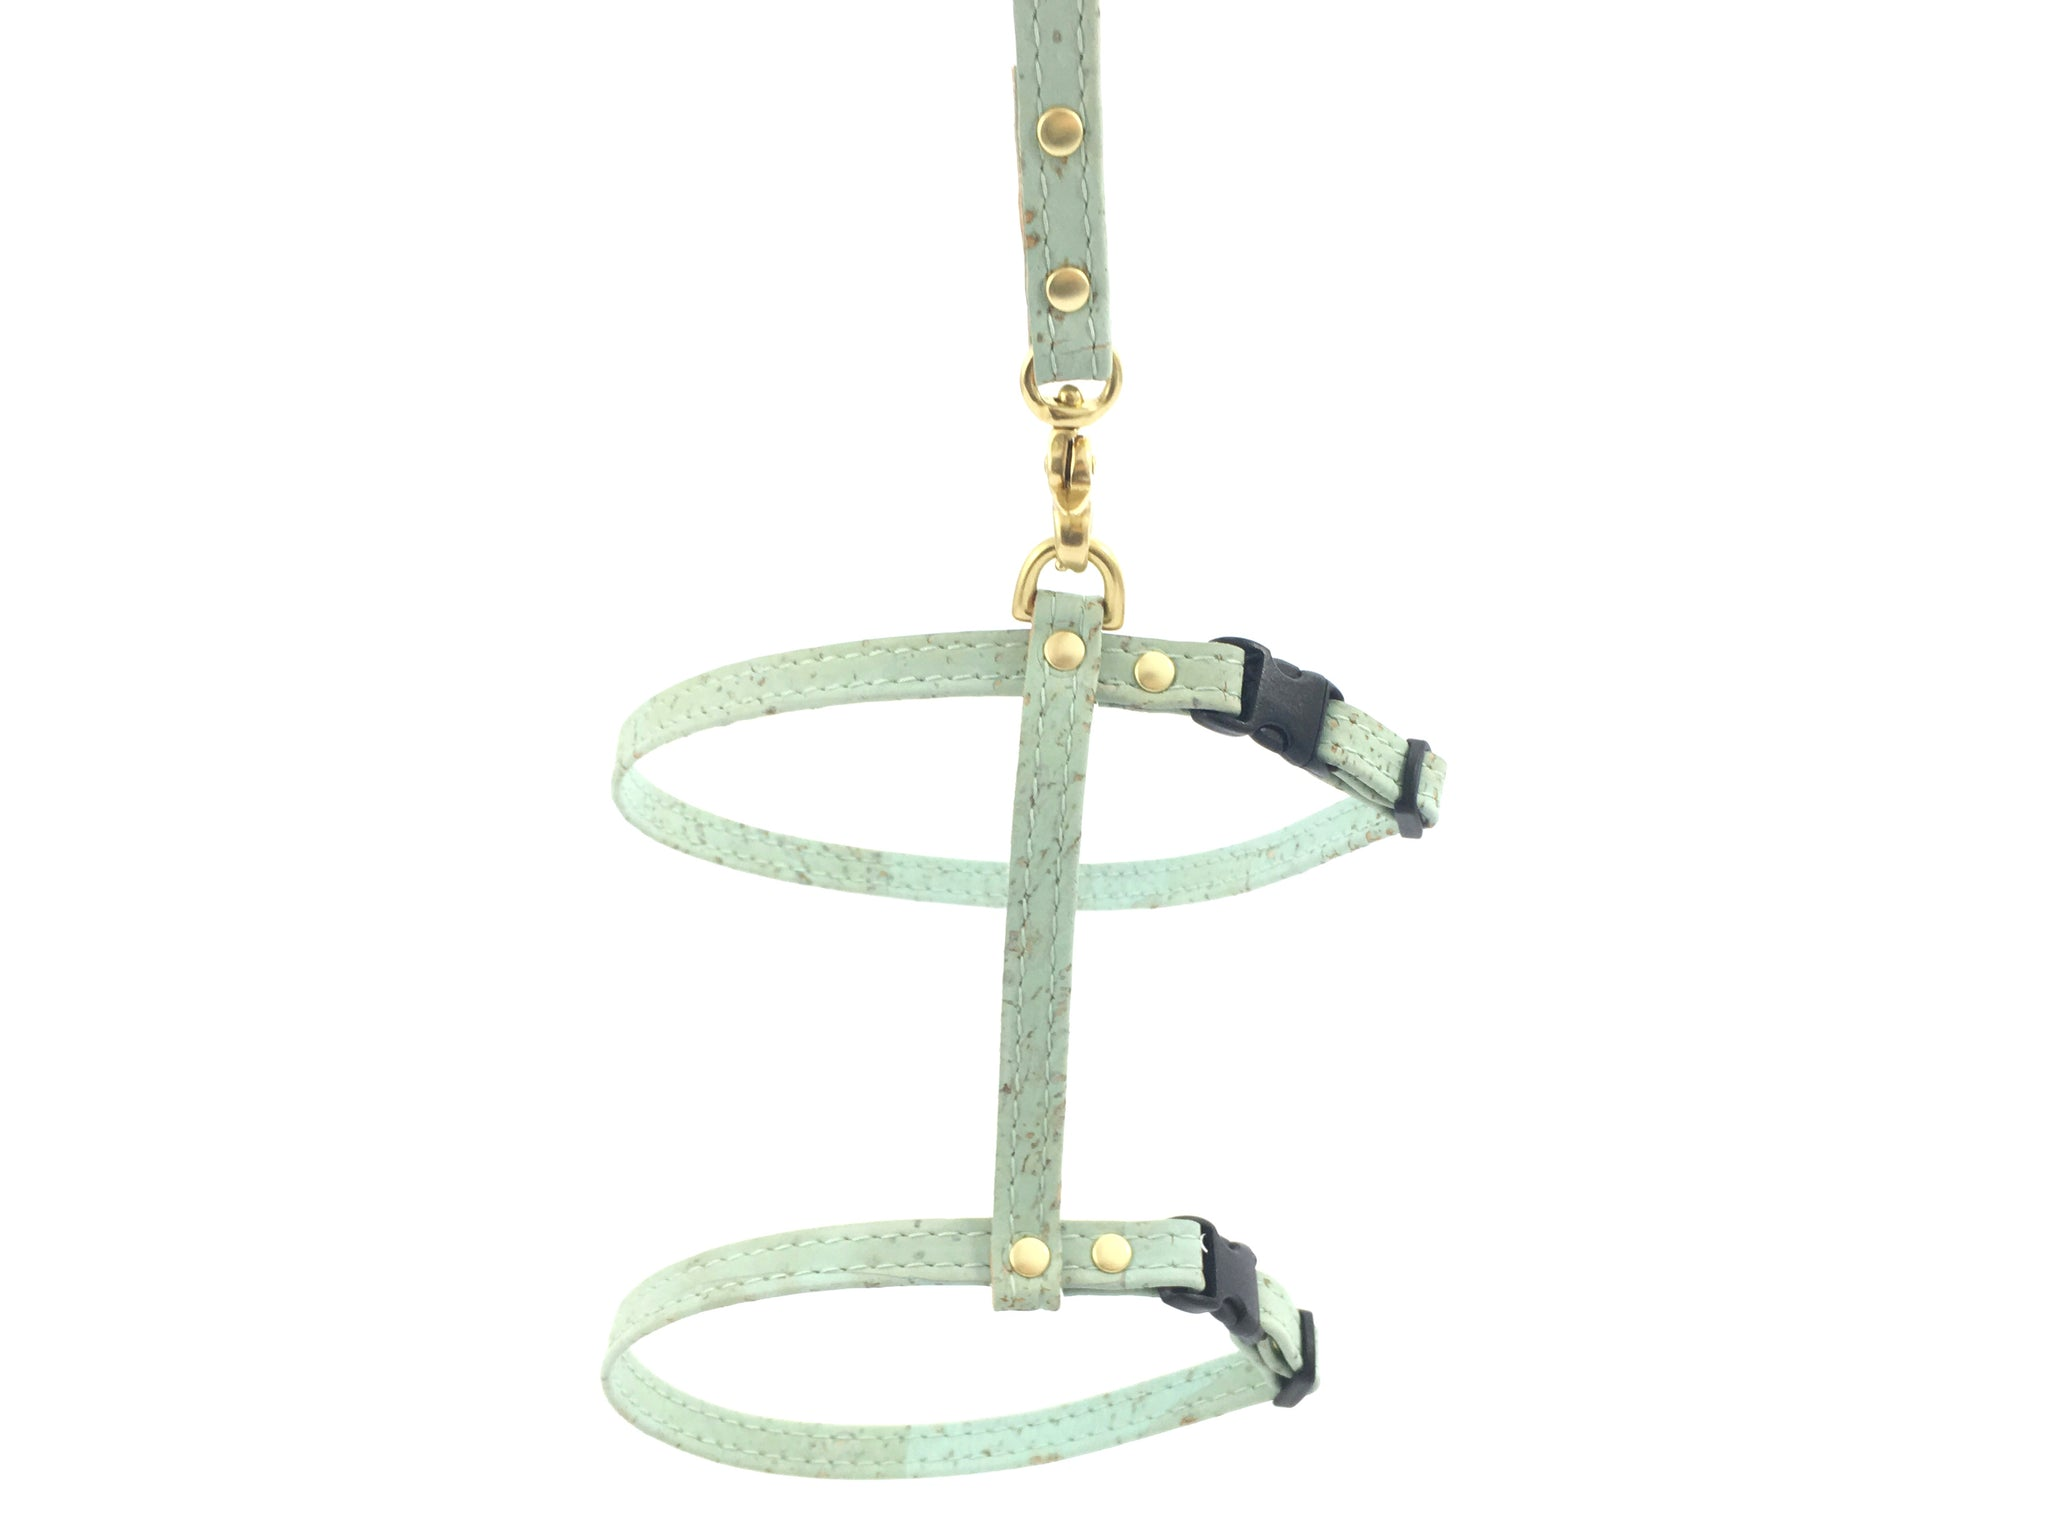 cat harness and leash in luxury vegan cork 'leather' with solid brass hardware, available in white, orange, green, pink, yellow and turquoise blue